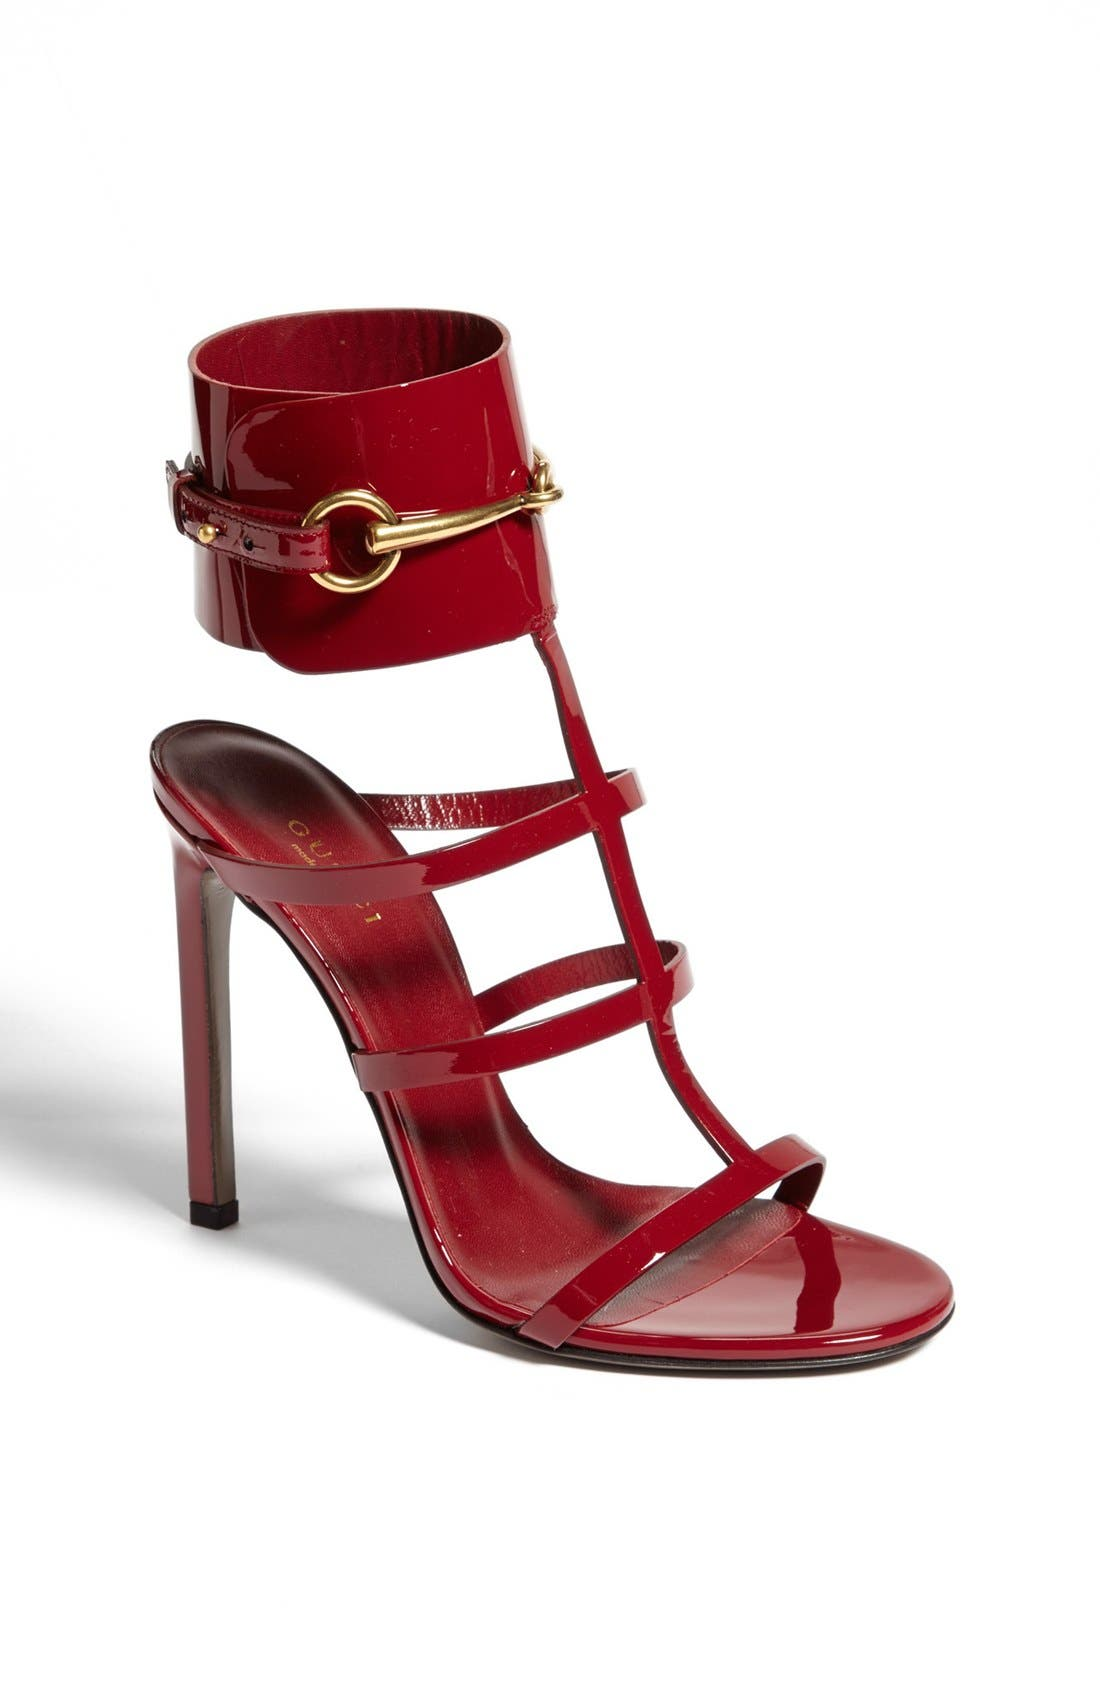 Alternate Image 1 Selected - Gucci 'Ursula' Sandal